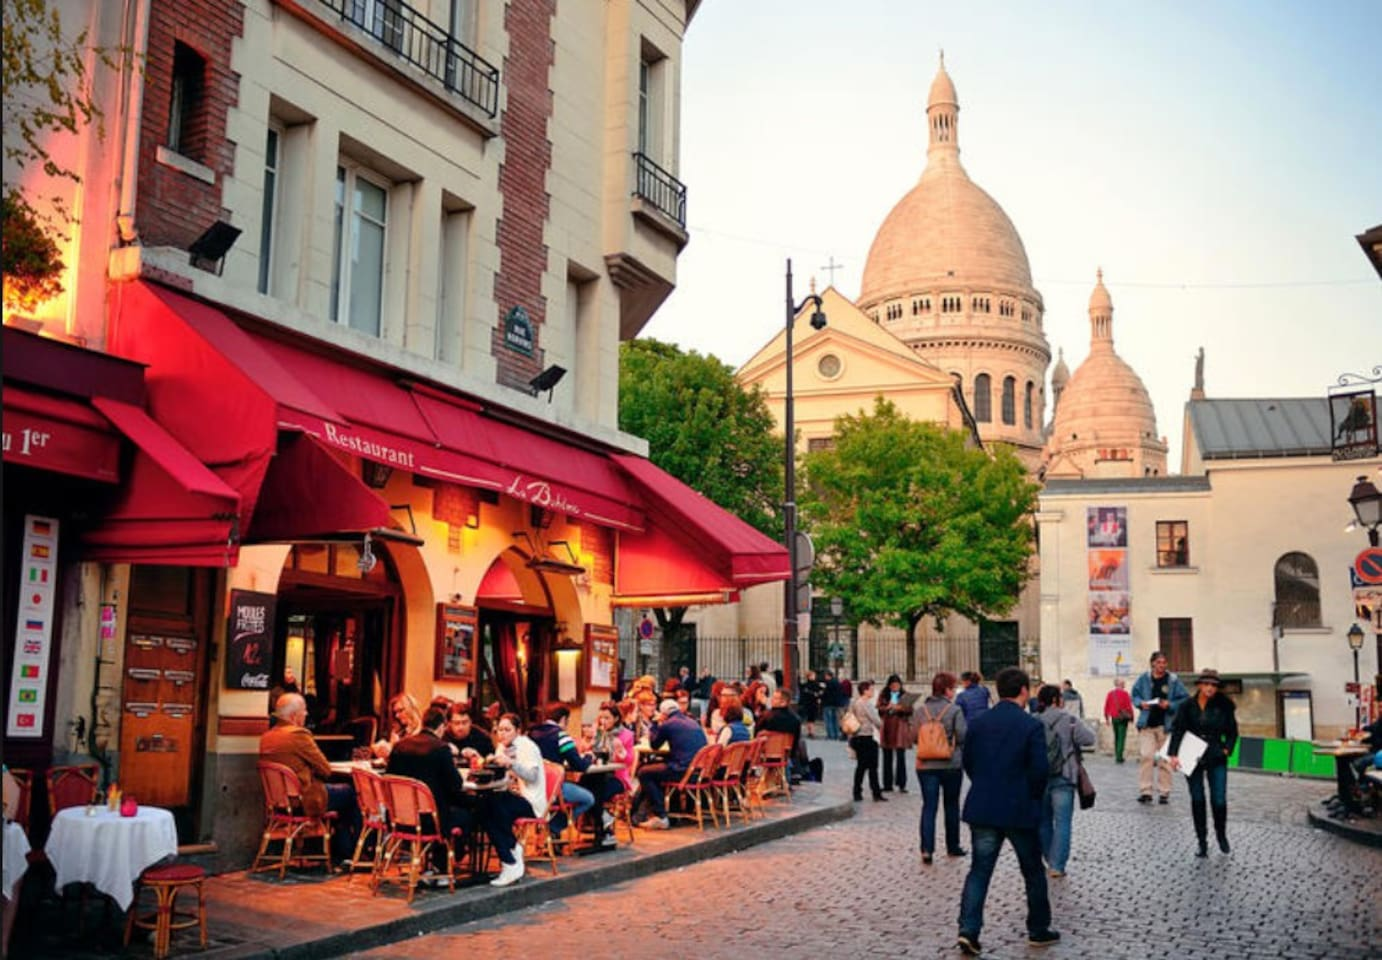 Near the Sacré Coeur